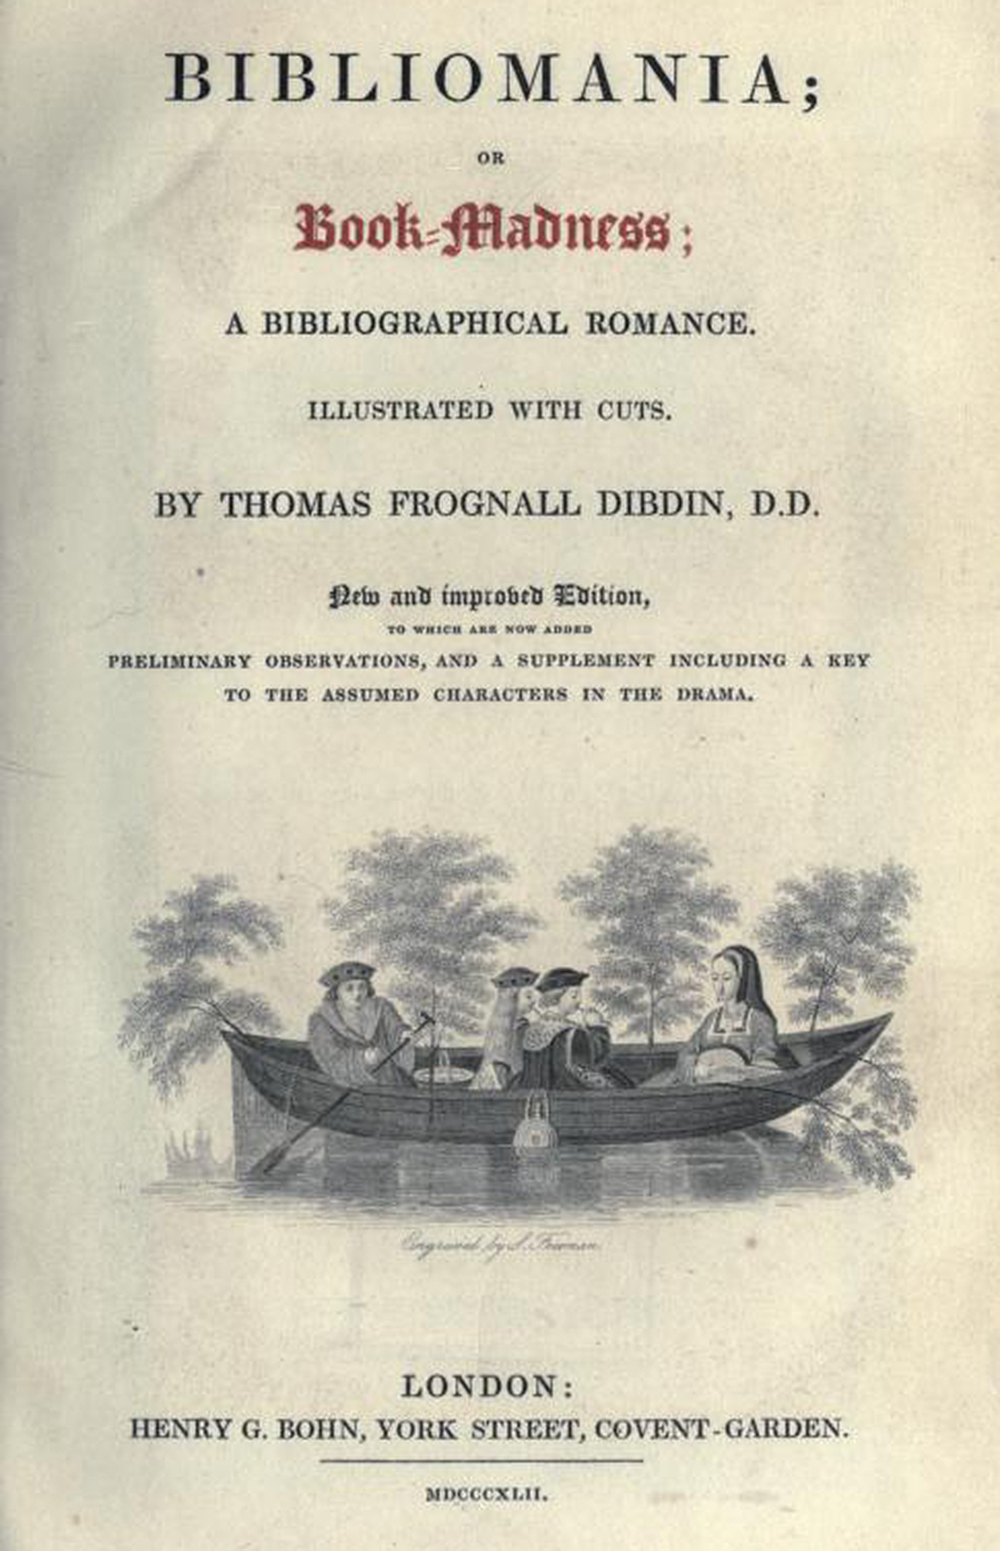 Title page from Bibliomania, or, Book-Madness: A Bibliographical Romance, 1842. Internet Archive, University of Toronto.